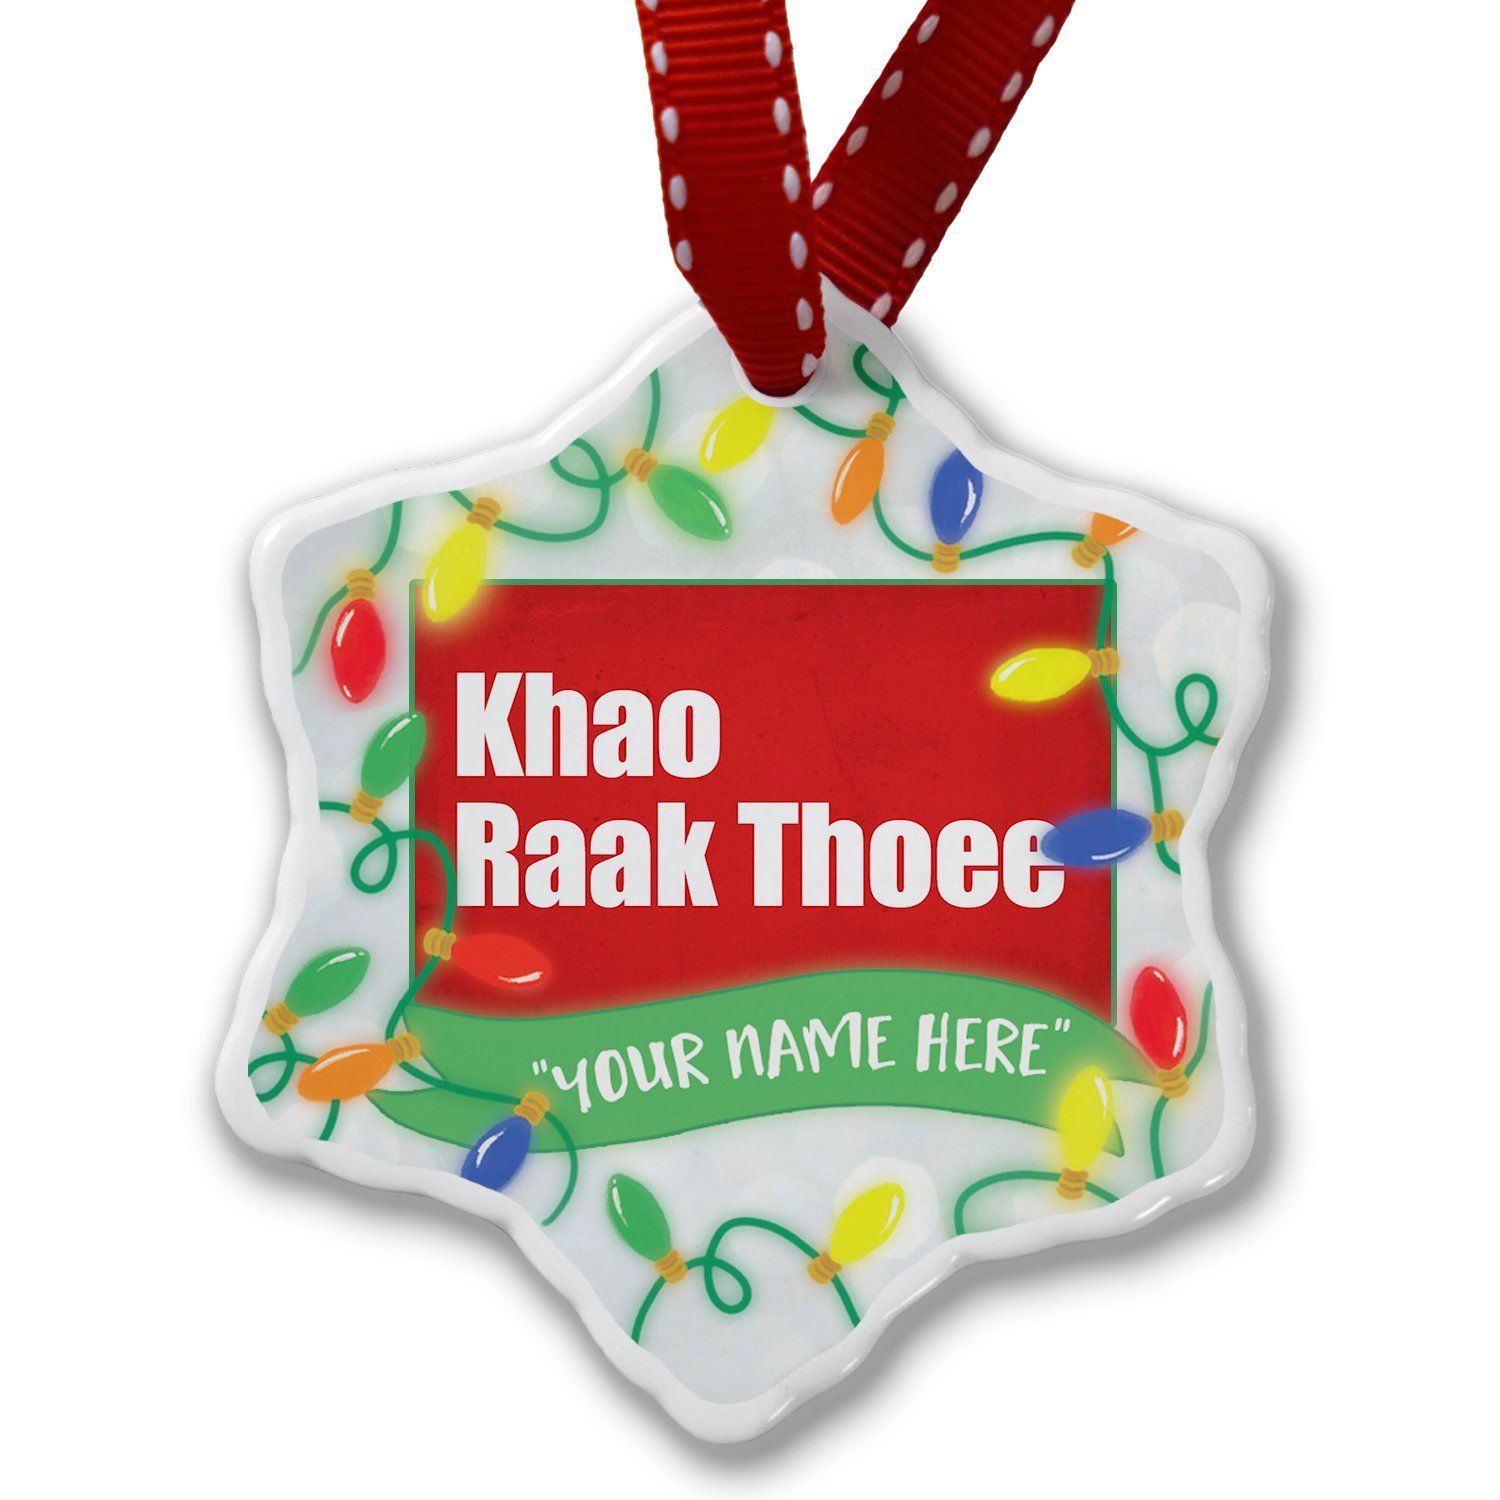 Personalized Name Christmas Ornament, I Love You ThaI Red Rose from Tailand NEONBLOND